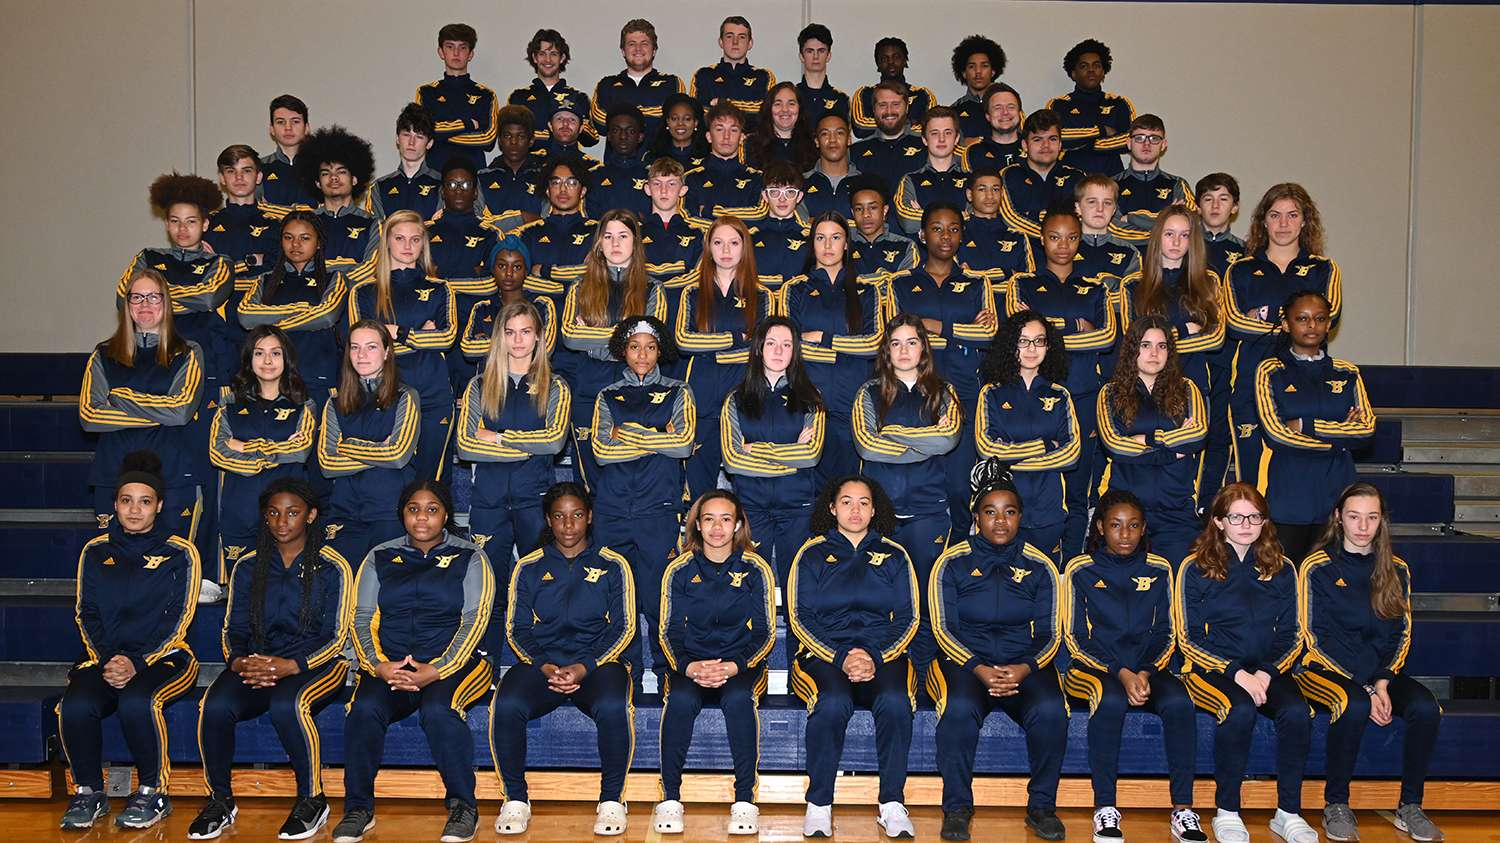 Track and Field Team Photo